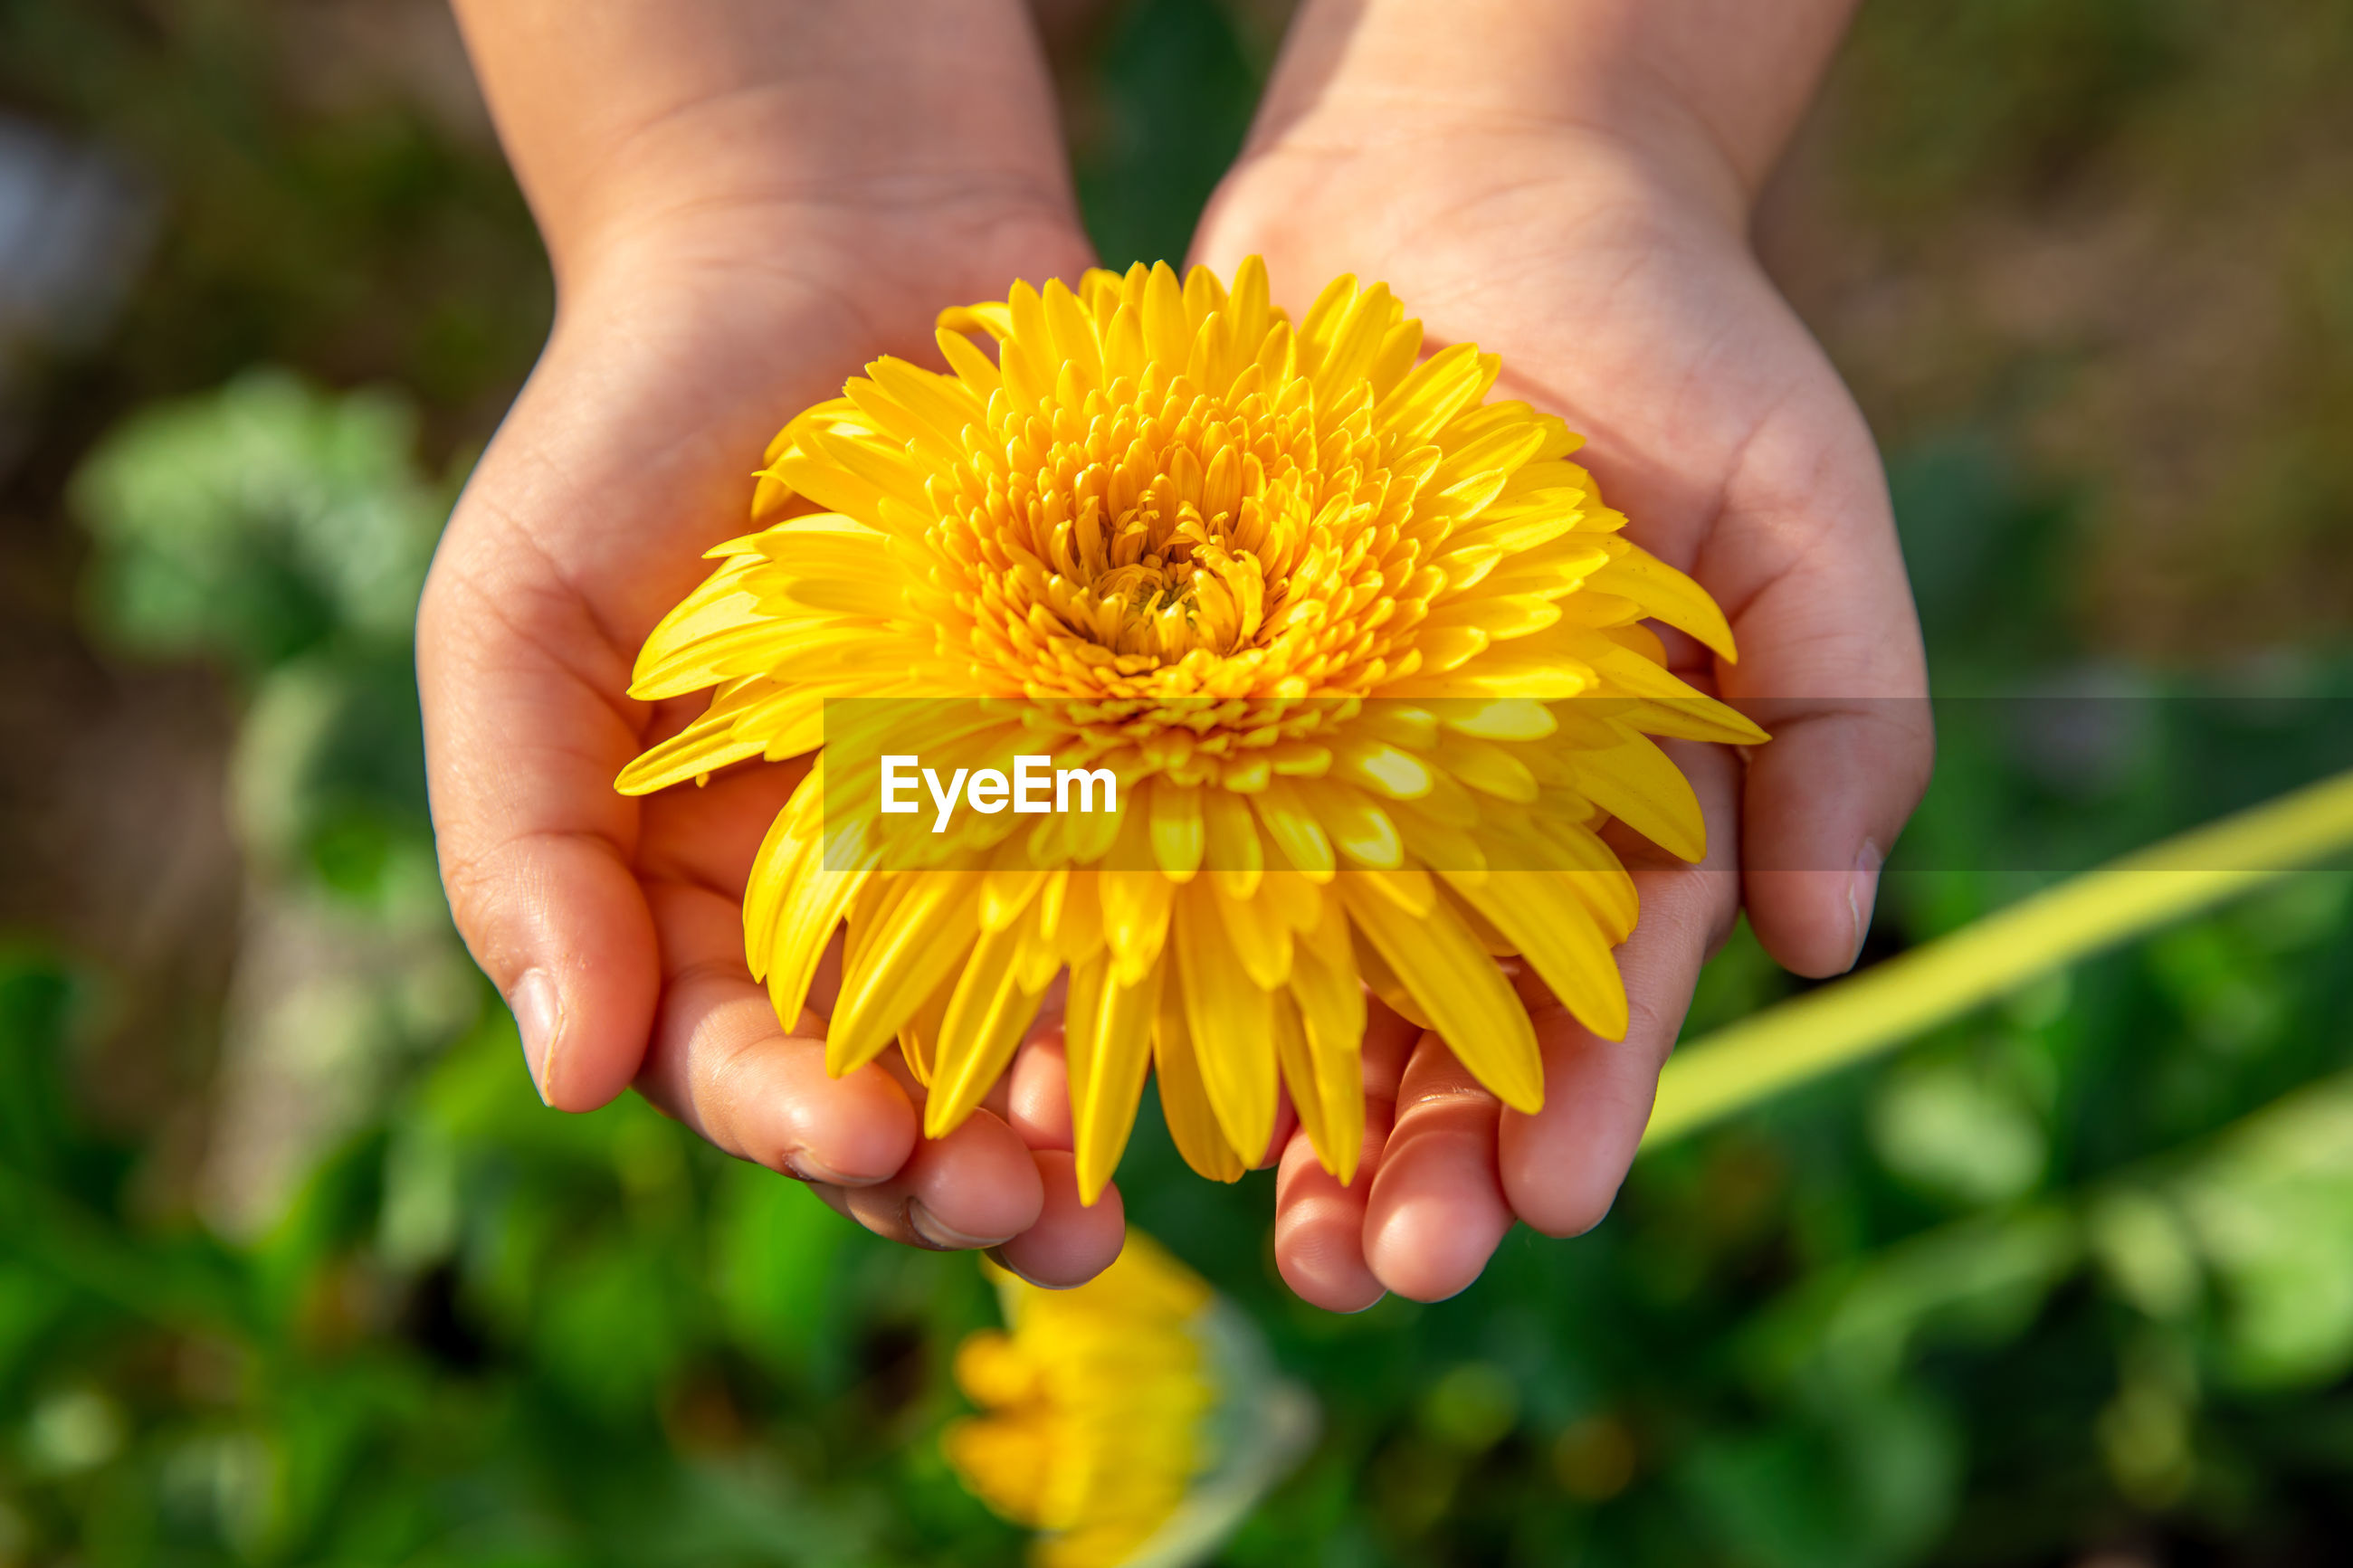 CLOSE-UP OF PERSON HOLDING YELLOW FLOWER